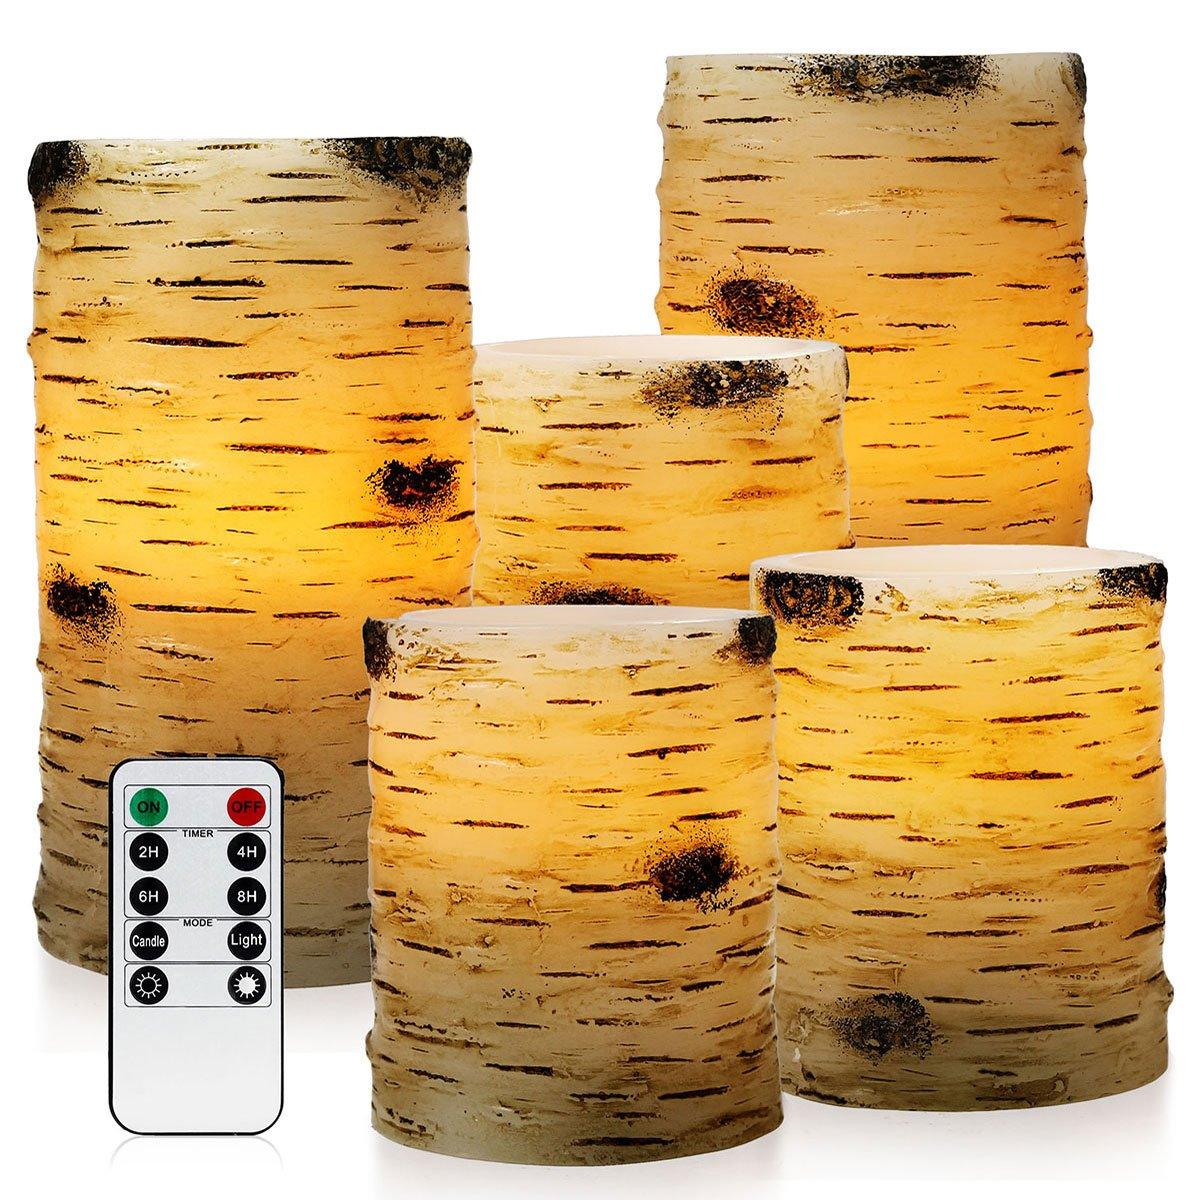 Pandaing Set of 5 Pillar Birch Bark Effect Flameless LED Candles with 10 key Remote Control and 2 4 6 or 8 Hours Timer Function